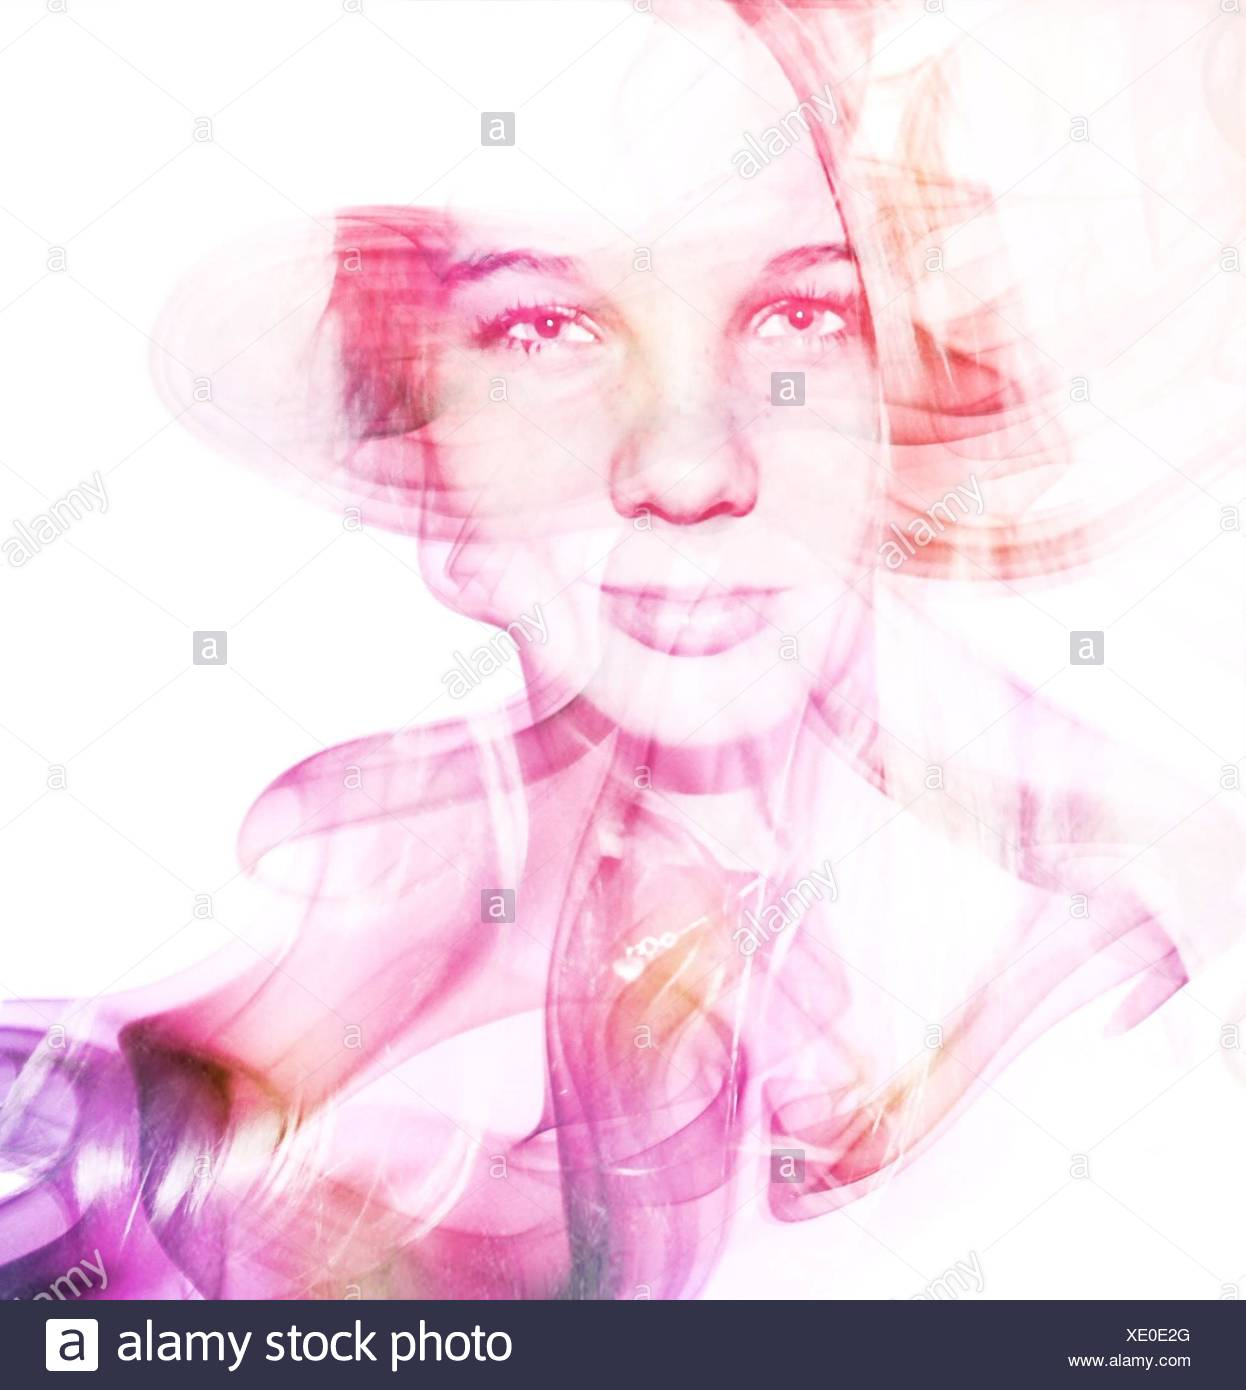 Digital Composite Of Woman Stock Photo